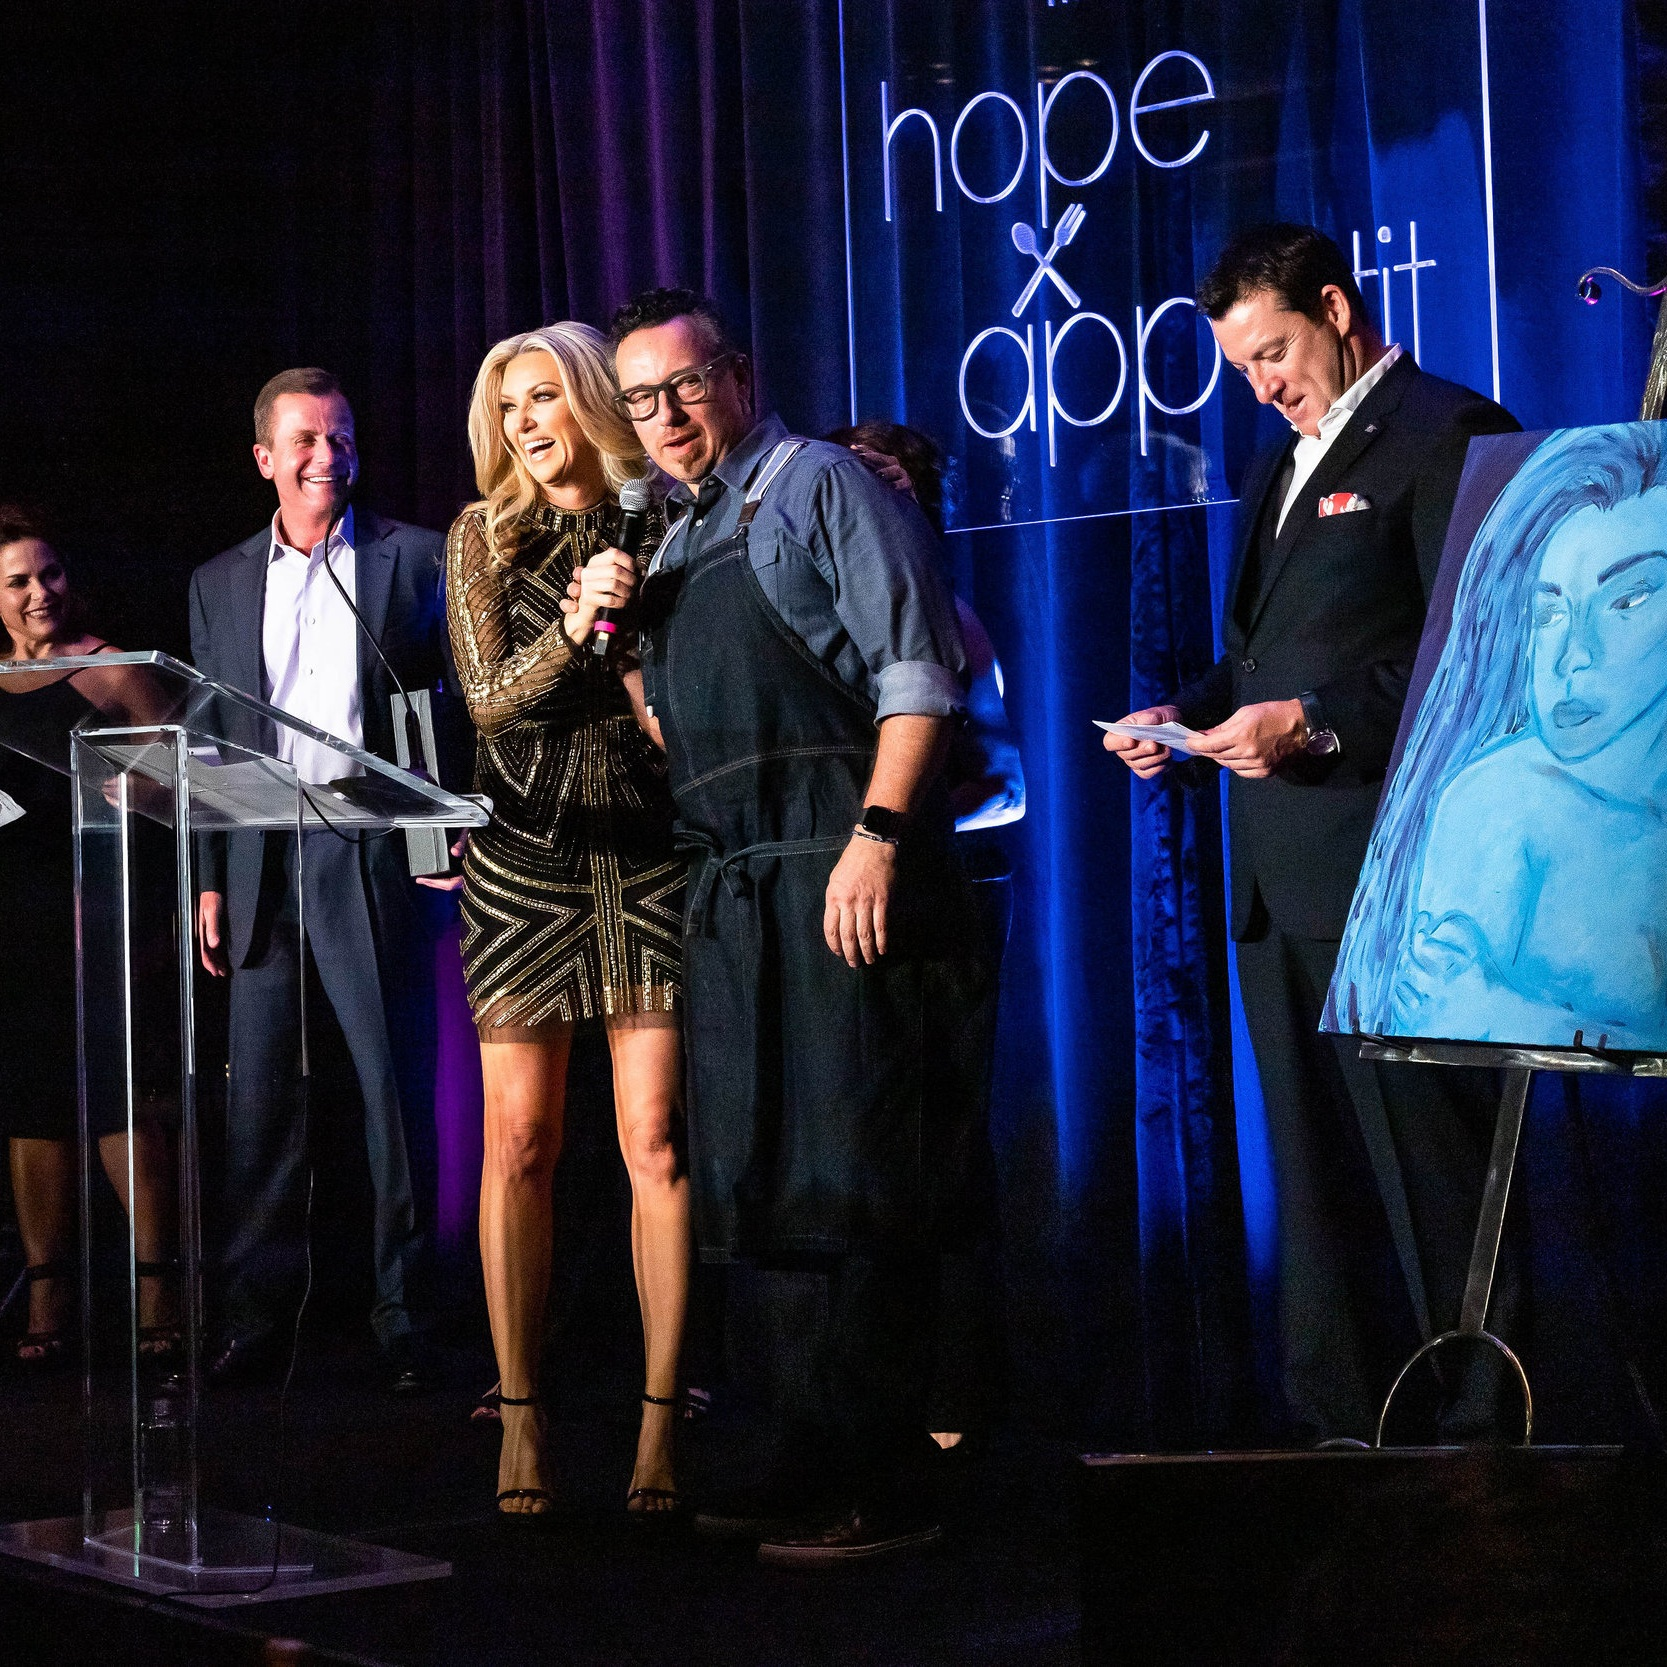 Watch the Hope Appétit 2019 live stream here!